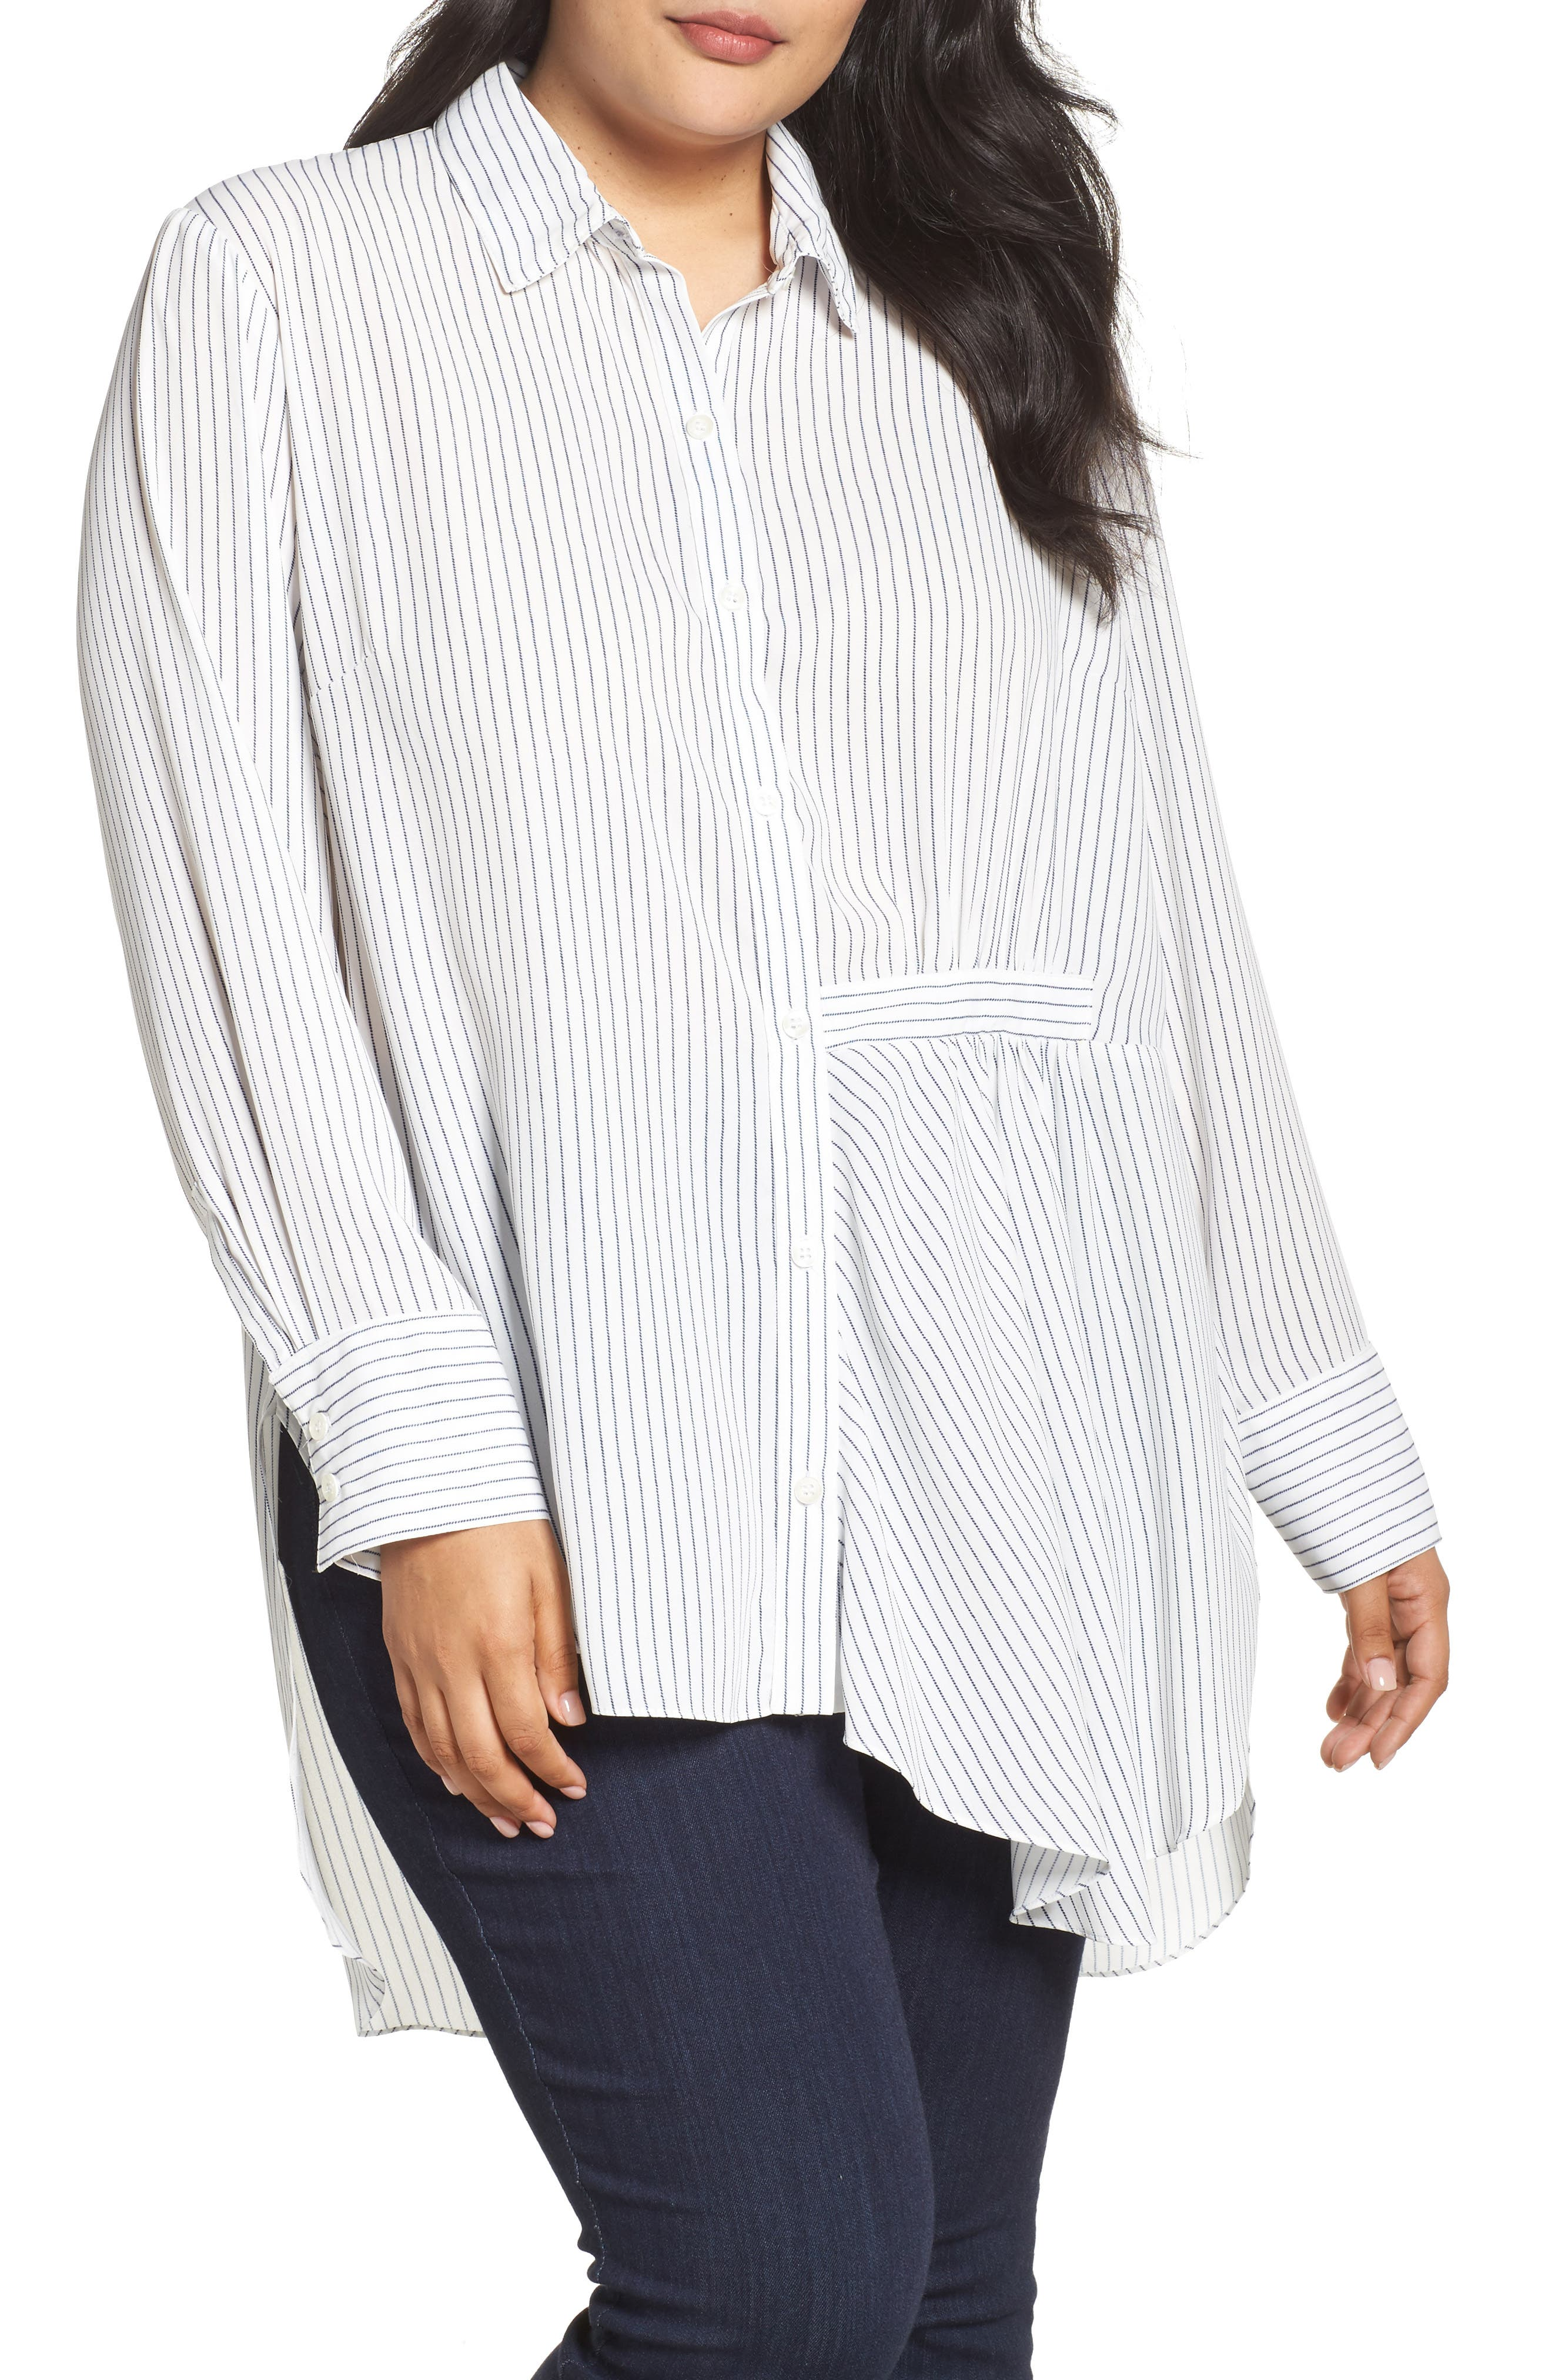 Main Image - RACHEL Rachel Roy High/Low Pinstripe Shirt (Plus Size)